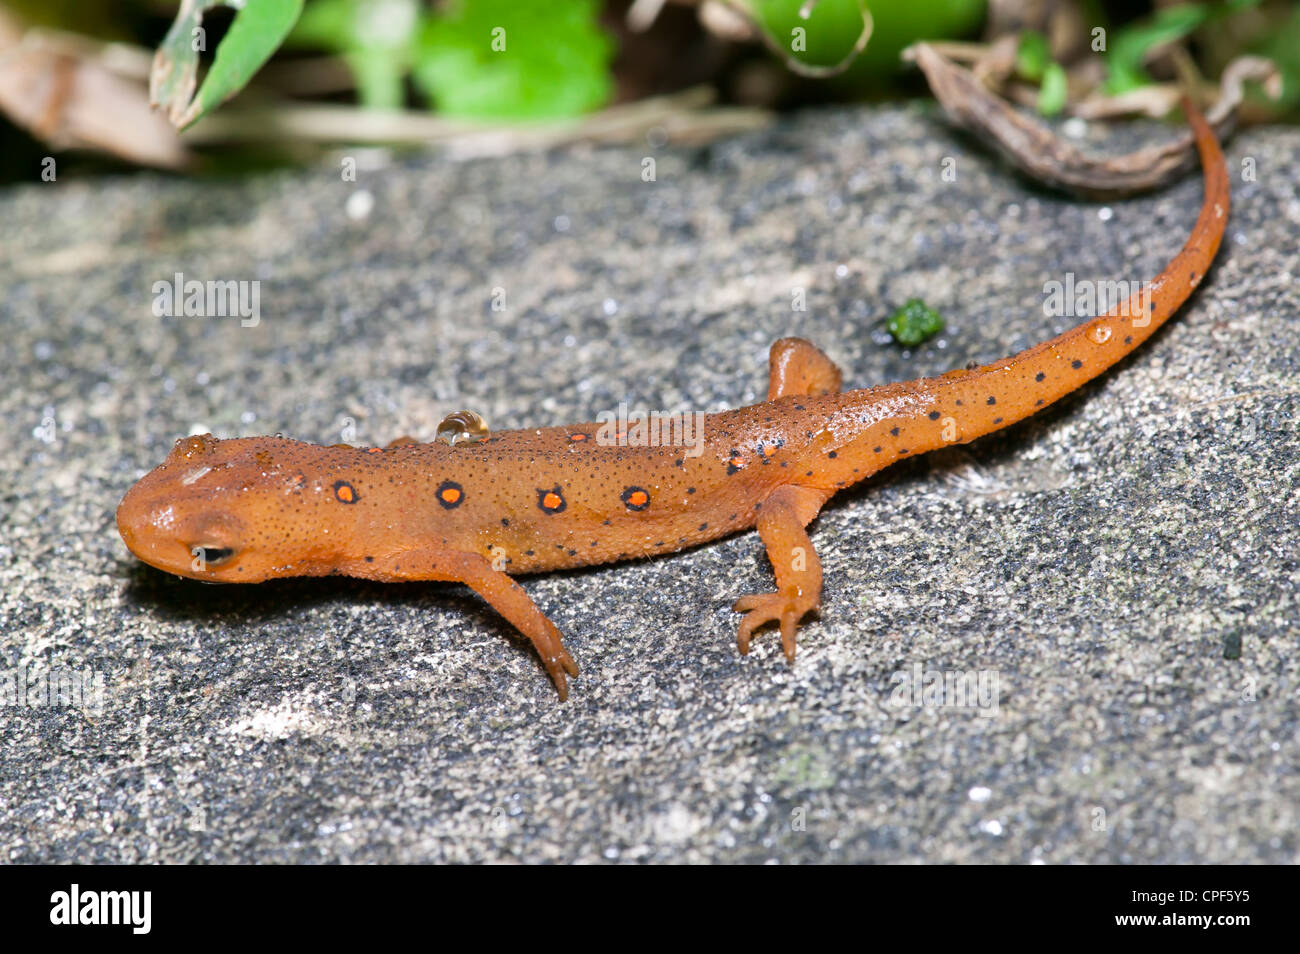 The terrestrial juvenile stage of a Red-spotted Newt (Notophthalmus viridescens) salamander on a rock near a wet forested area. Stock Photo